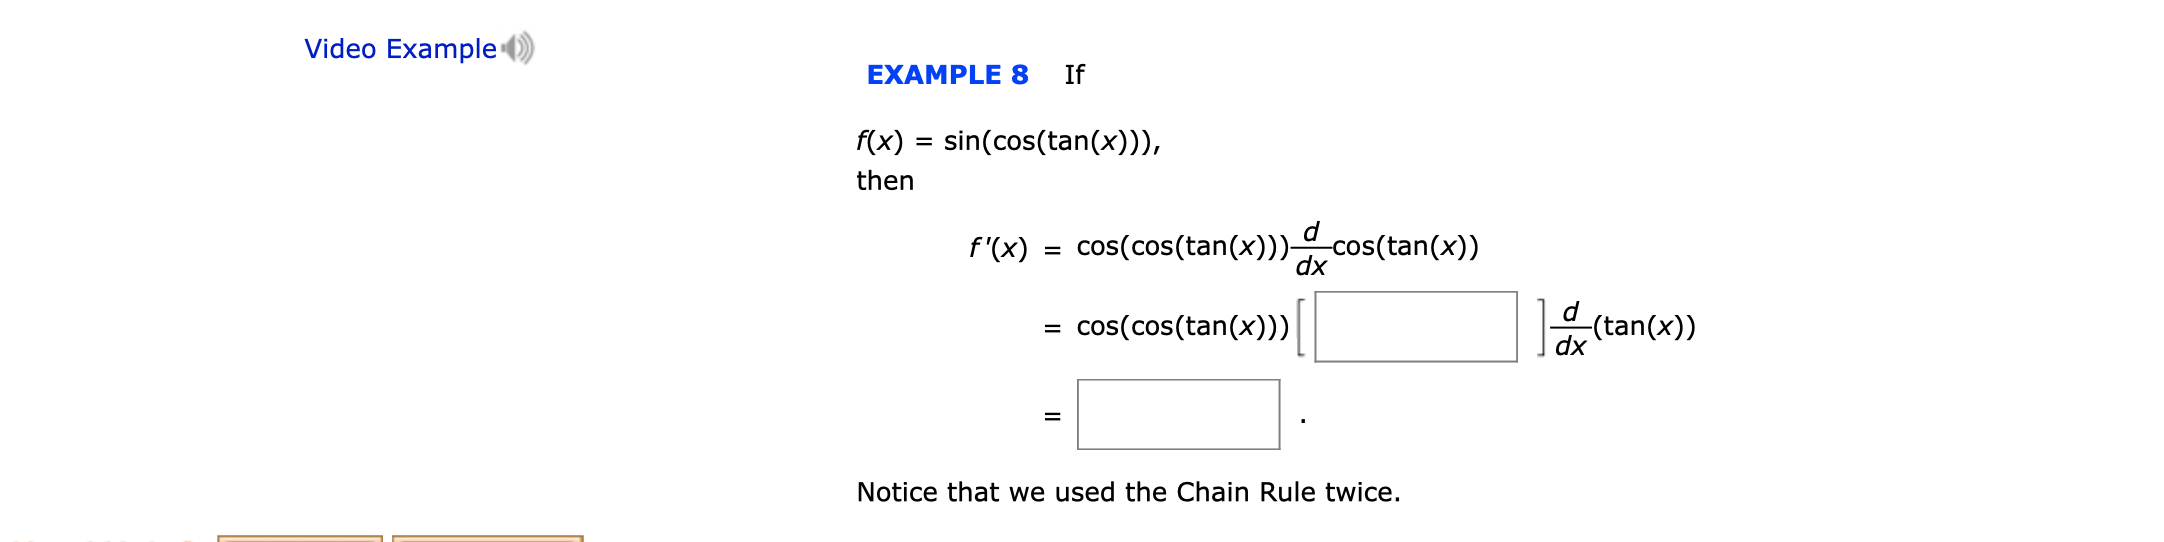 Video Example EXAMPLE 8 If f(x) sin(cos(tan(x))) then d f'(x) cos(cos(tan(x)))cos(tan(x)) dx d (tan(x)) cos(cos(tan(x))) dx Notice that we used the Chain Rule twice.